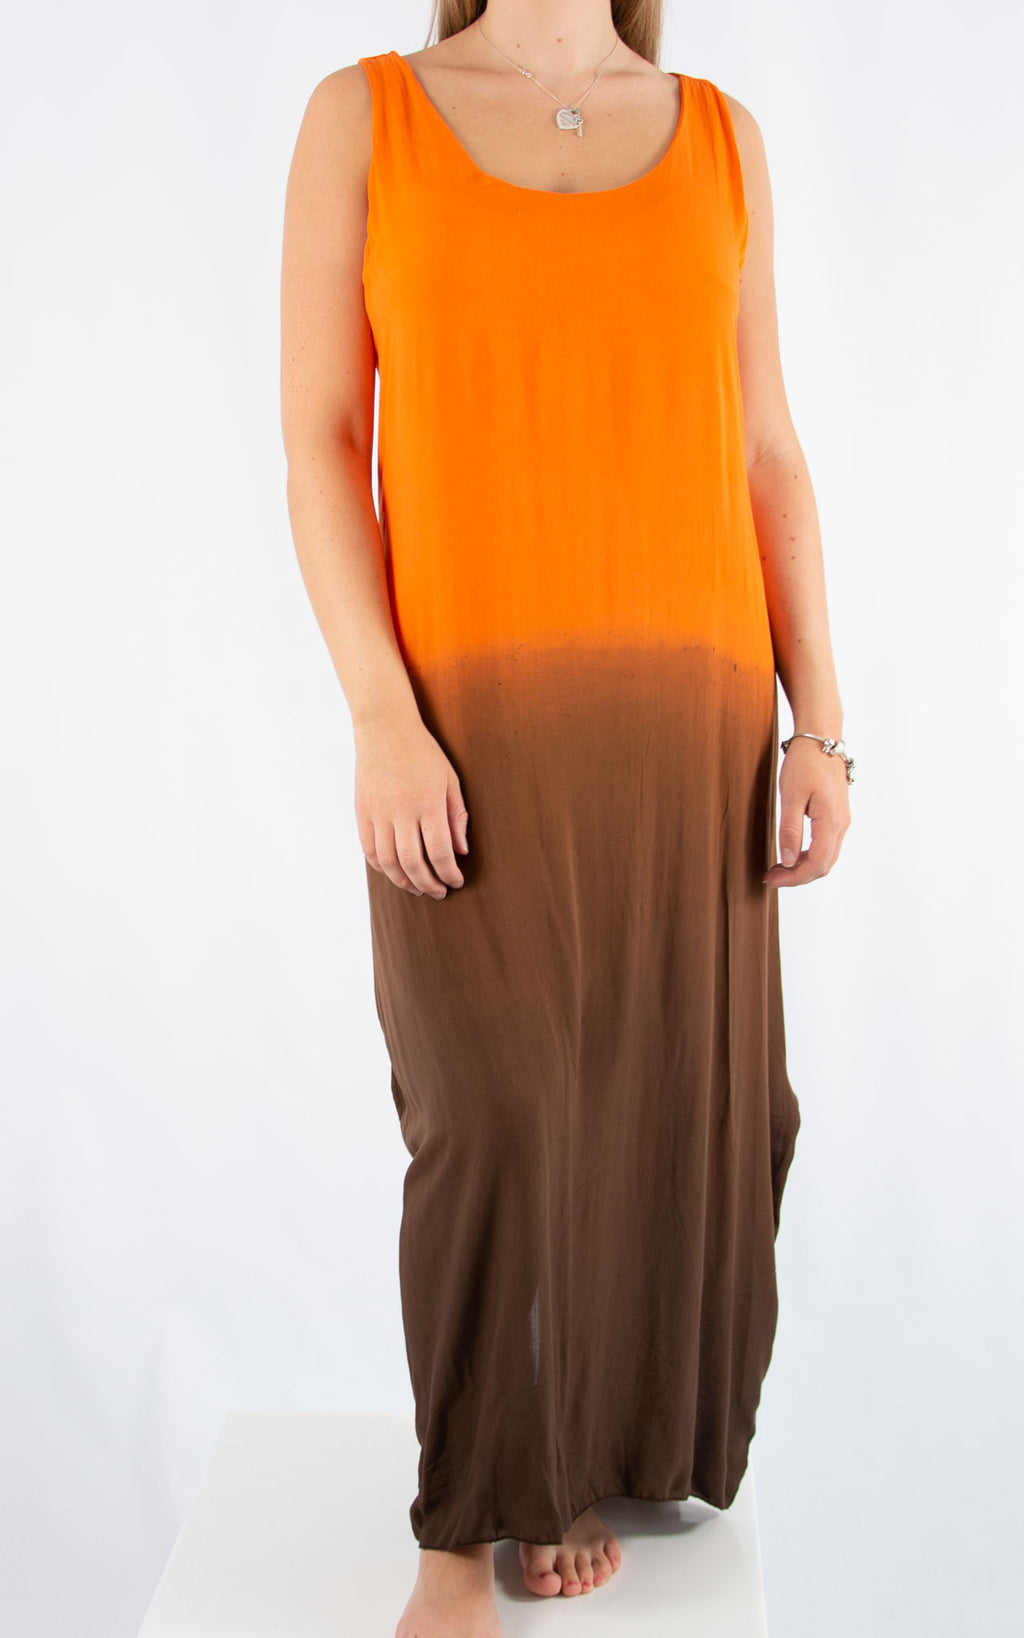 Orange Tie Dye Maxi Dress | Made in Italy